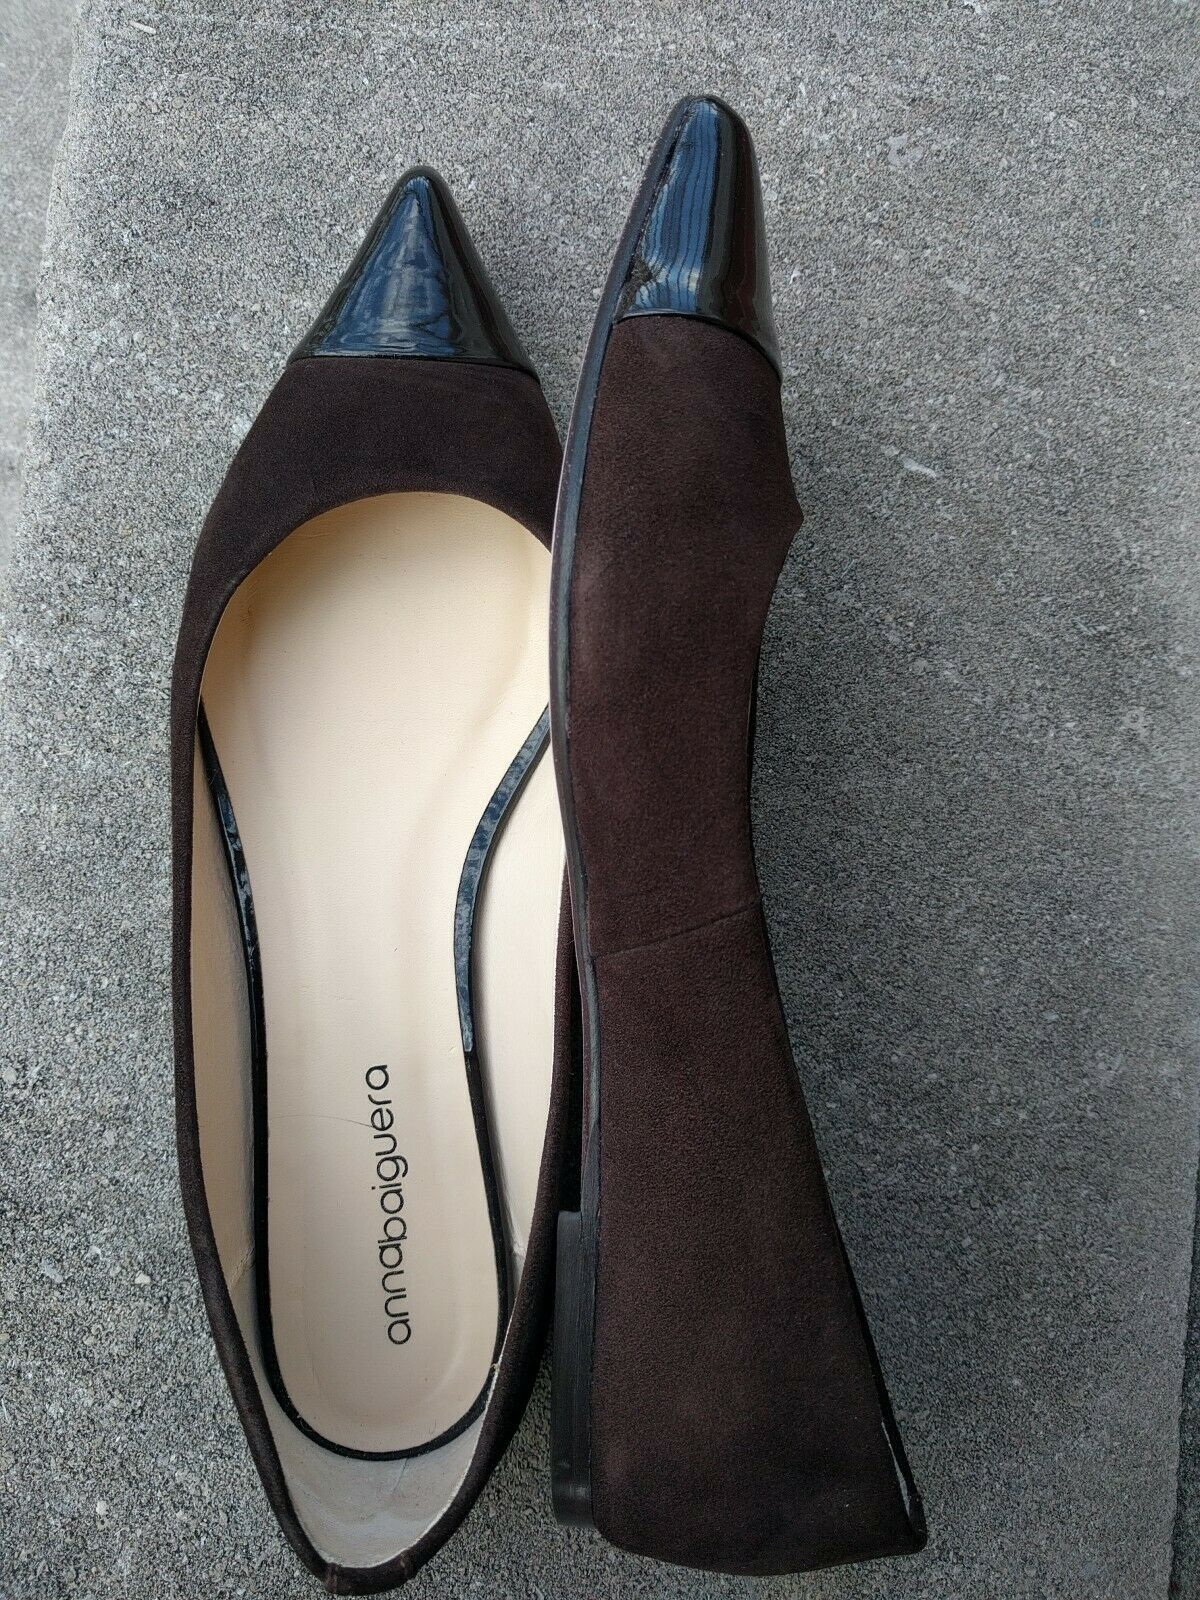 Anna Baiguera Brown Suede and and and patent Leather Flats 41 EU  10 US f30c6c